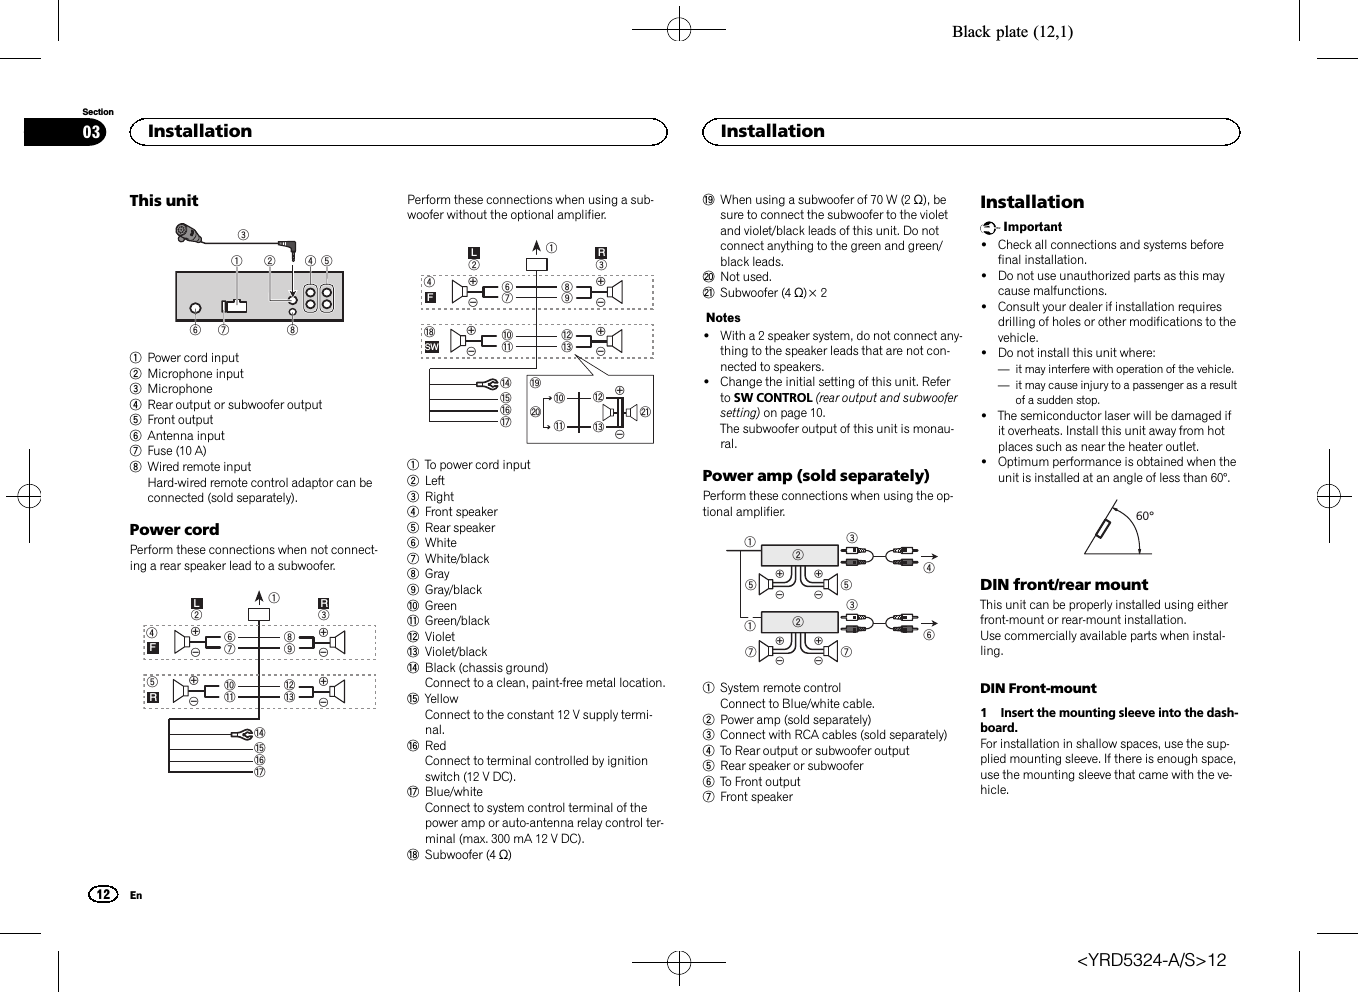 Wiring diagram pioneer deh 7300bt trusted wiring diagram awesome pioneer deh 7300bt wiring diagram gallery best image pioneer deh 6400bt wiring diagram pioneer asfbconference2016 Gallery